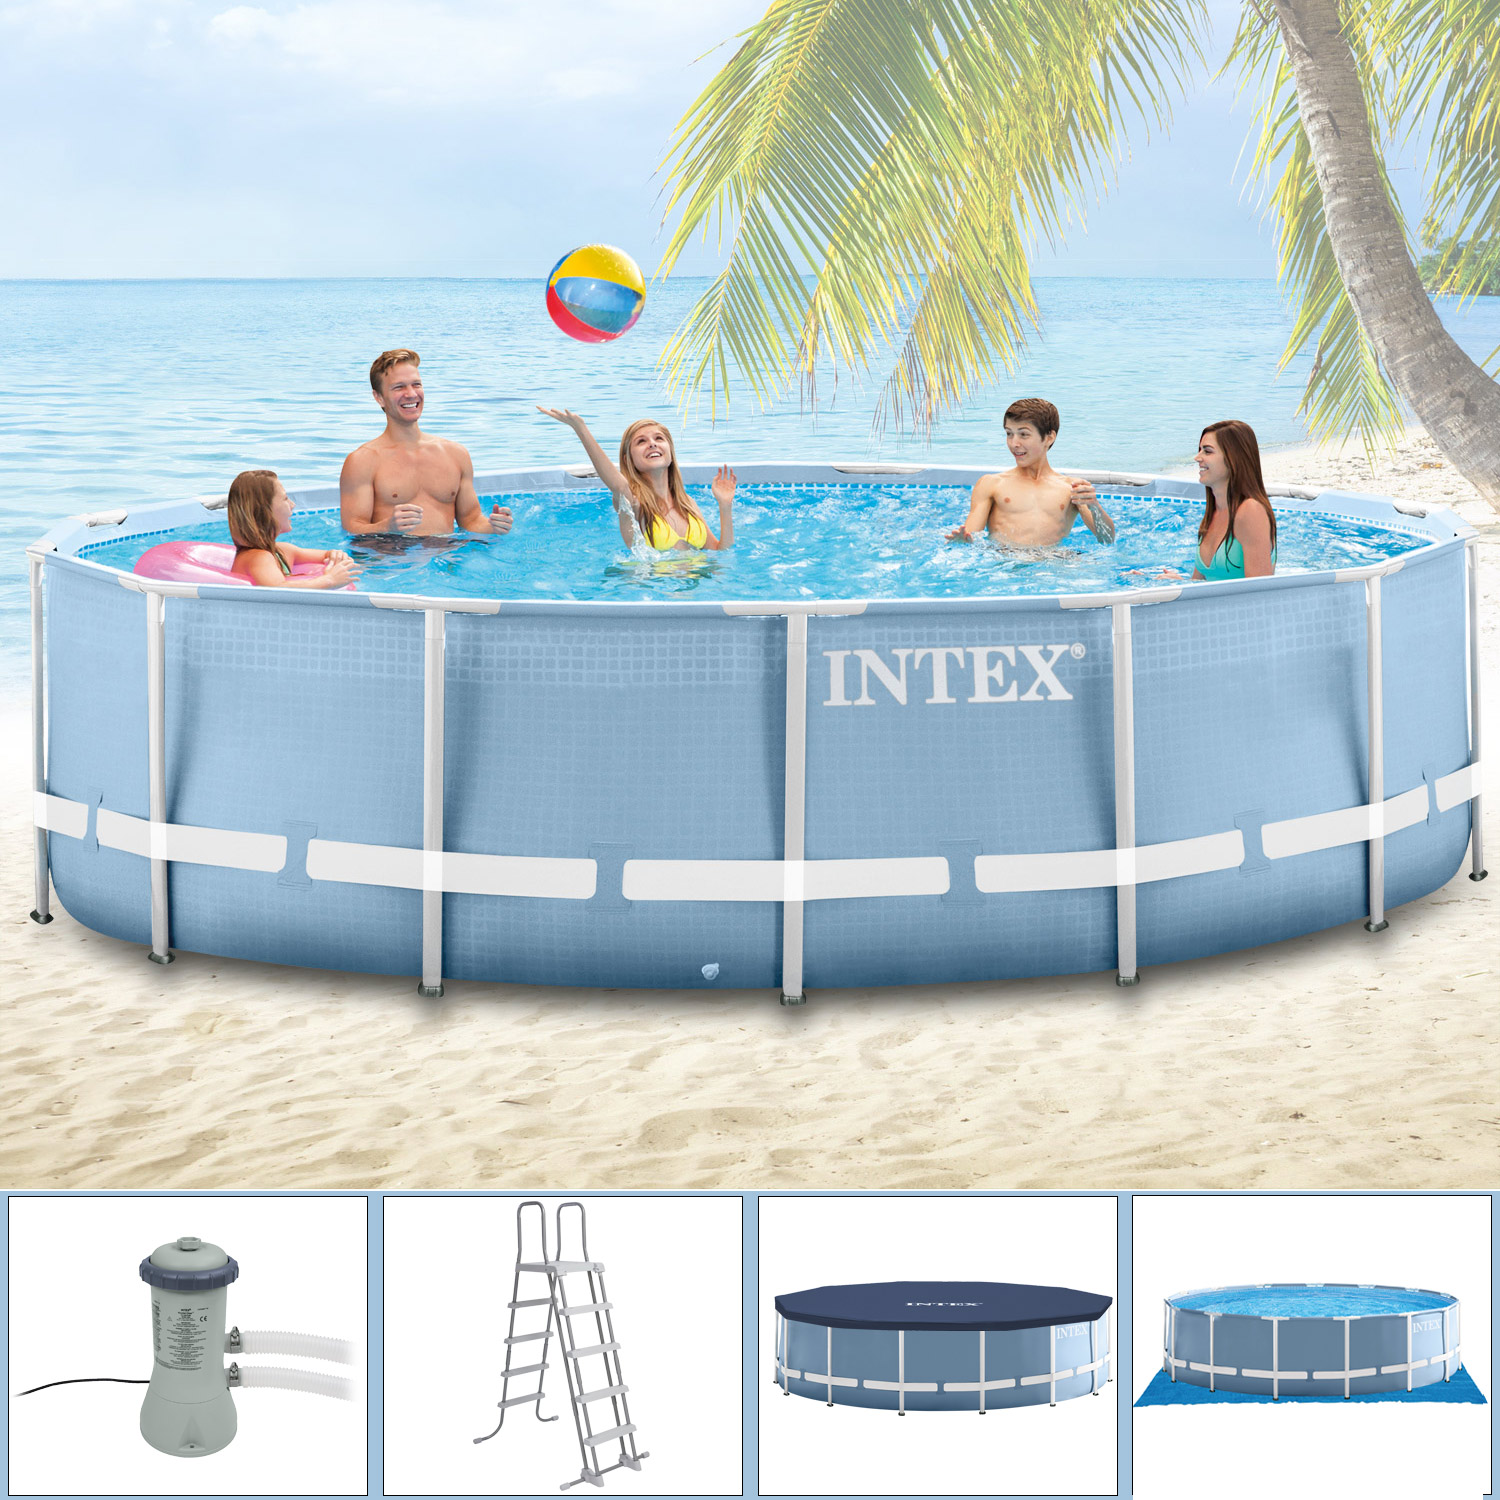 Intex swimming pool frame 366x122 cm mit leiter for Swimmingpool angebote